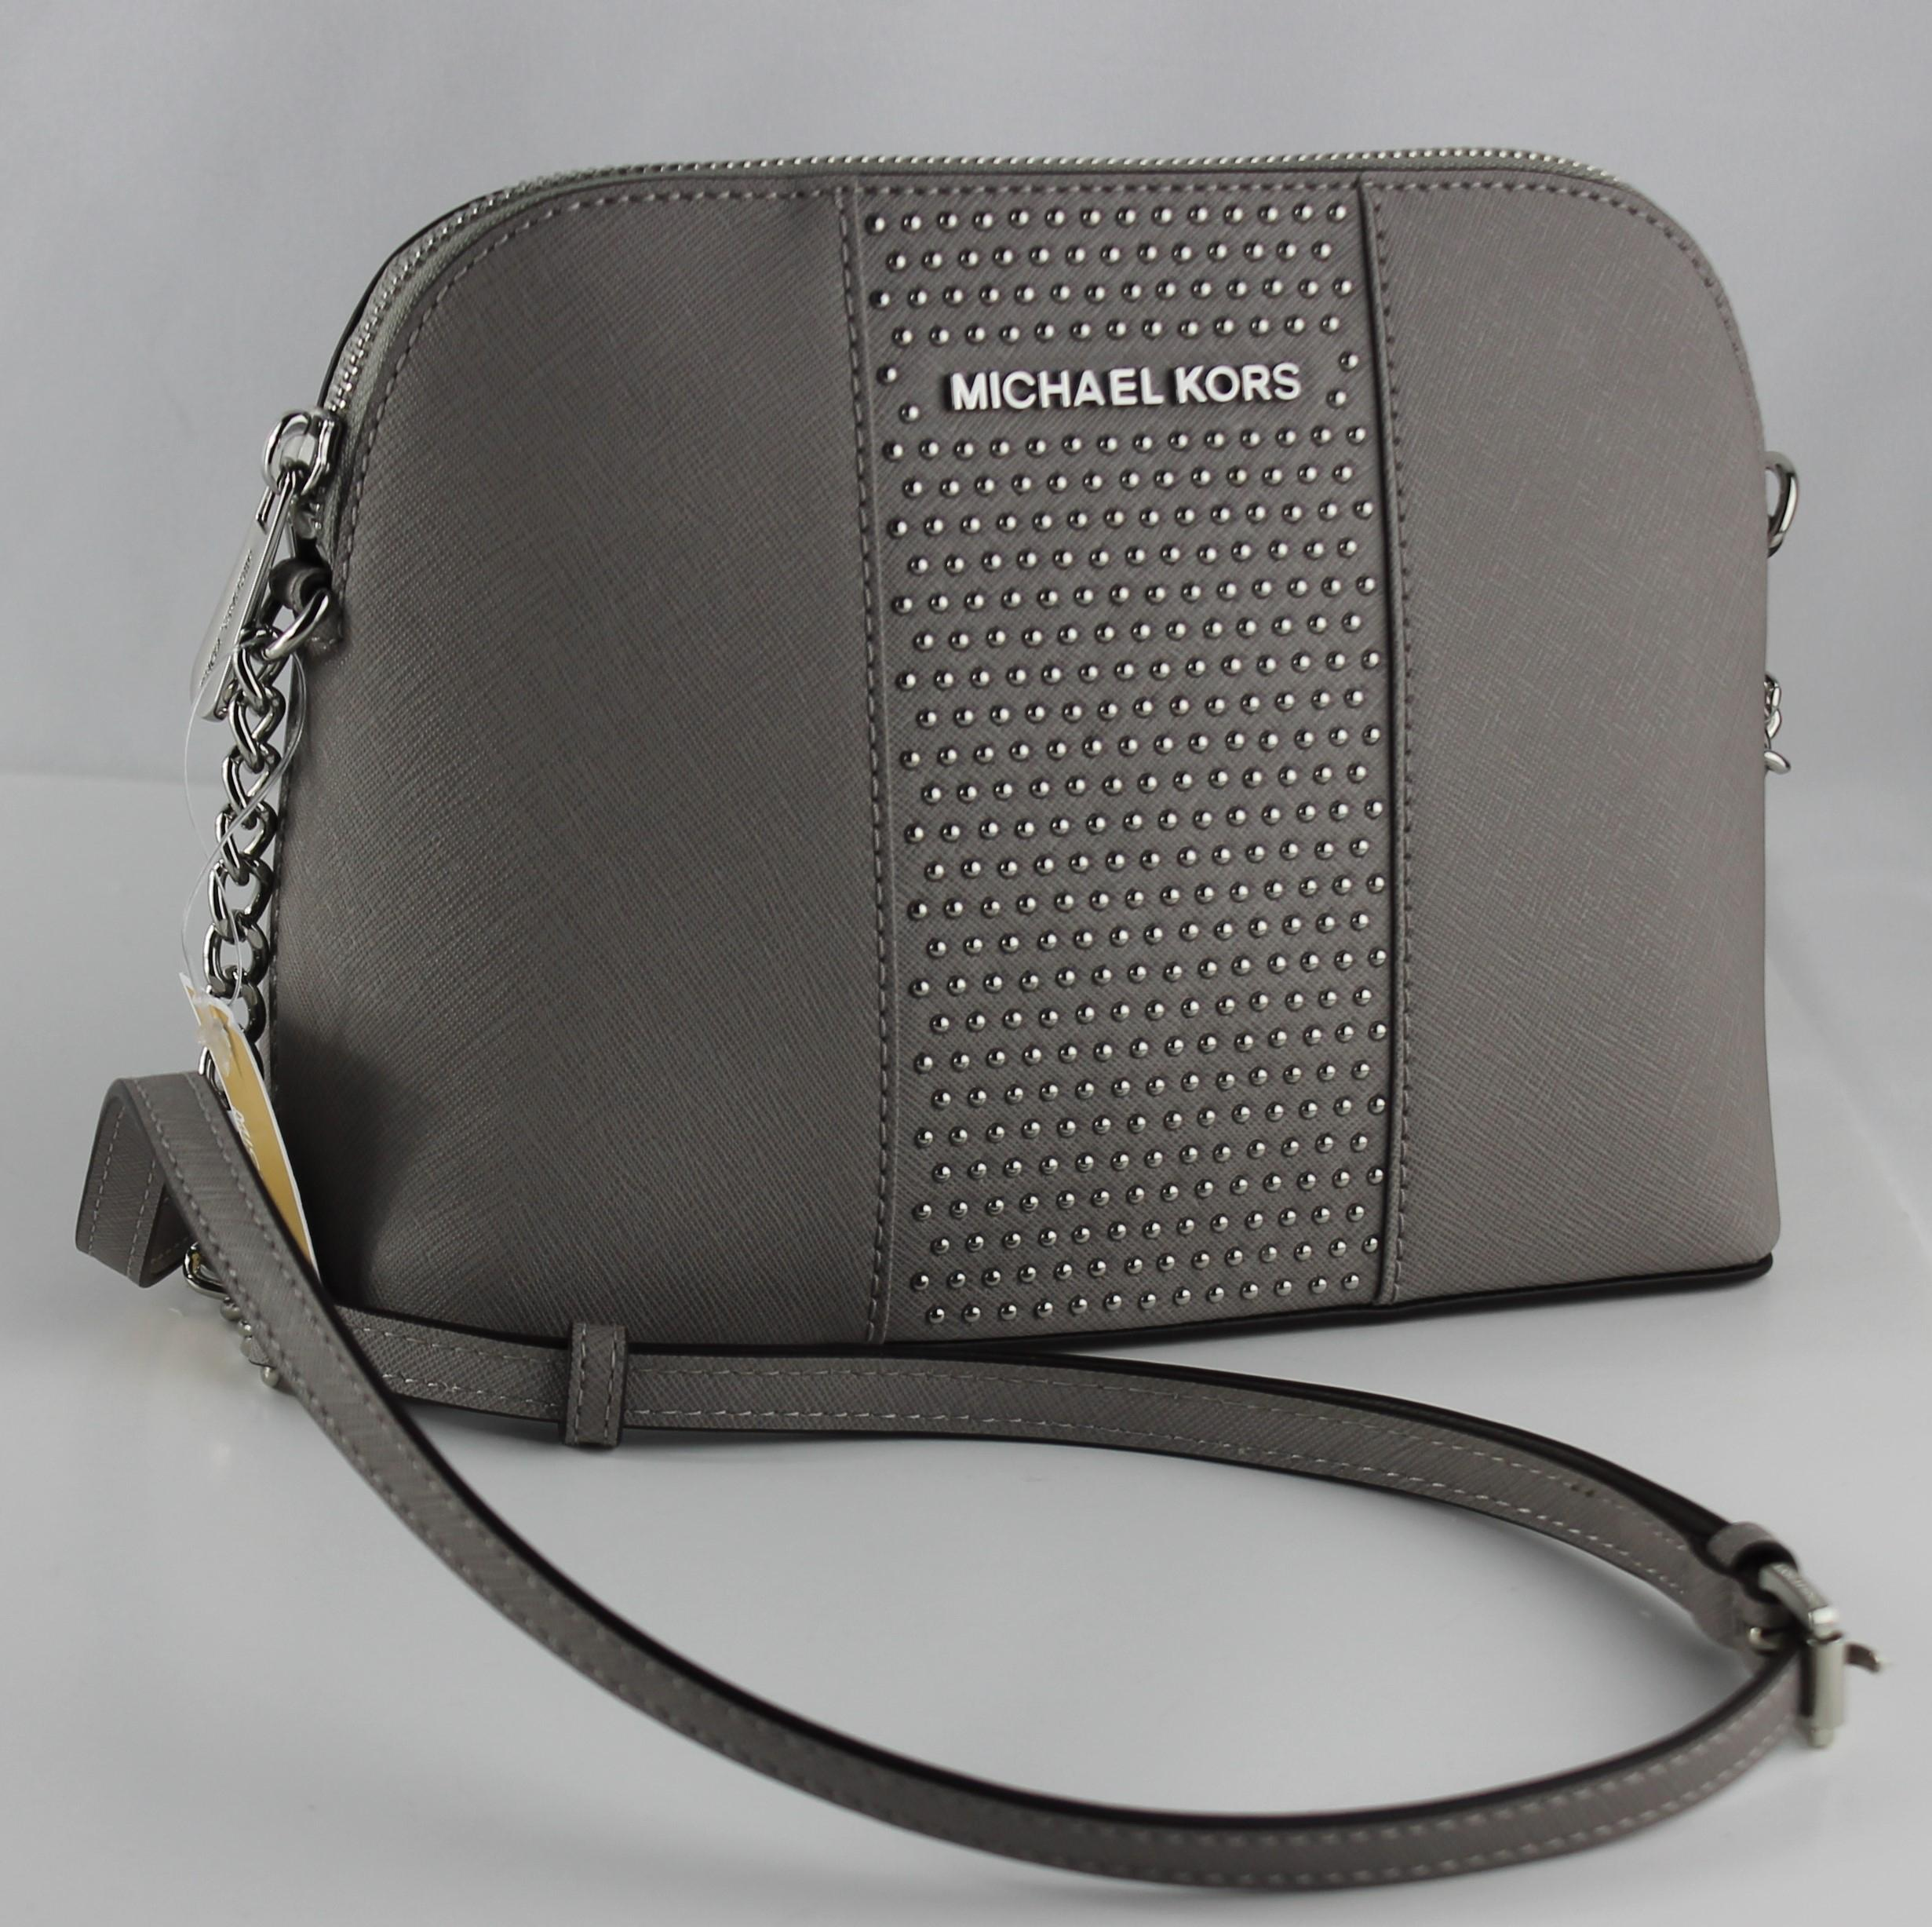 ae73367e6699 coupon for kabelka michael kors microstud cindy crossbody a1978 c70e3; low  cost michael kors cross body bag. 123456789101112 105f4 1b5a9